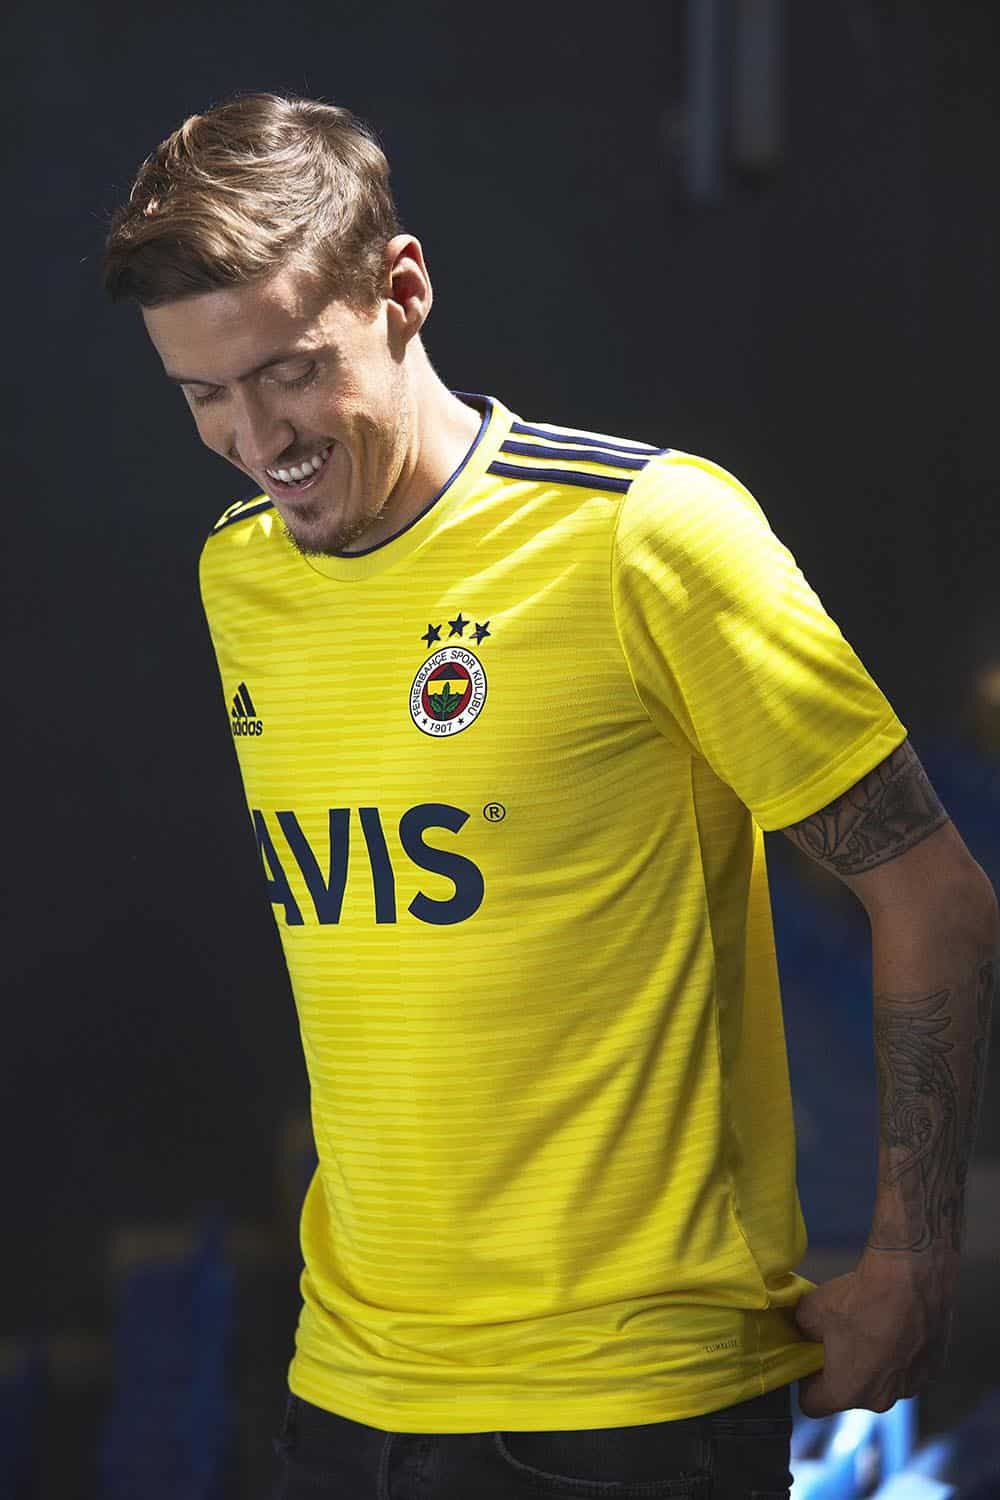 maillot-exterieur-fenerbahce-2019-2020-adidas-1